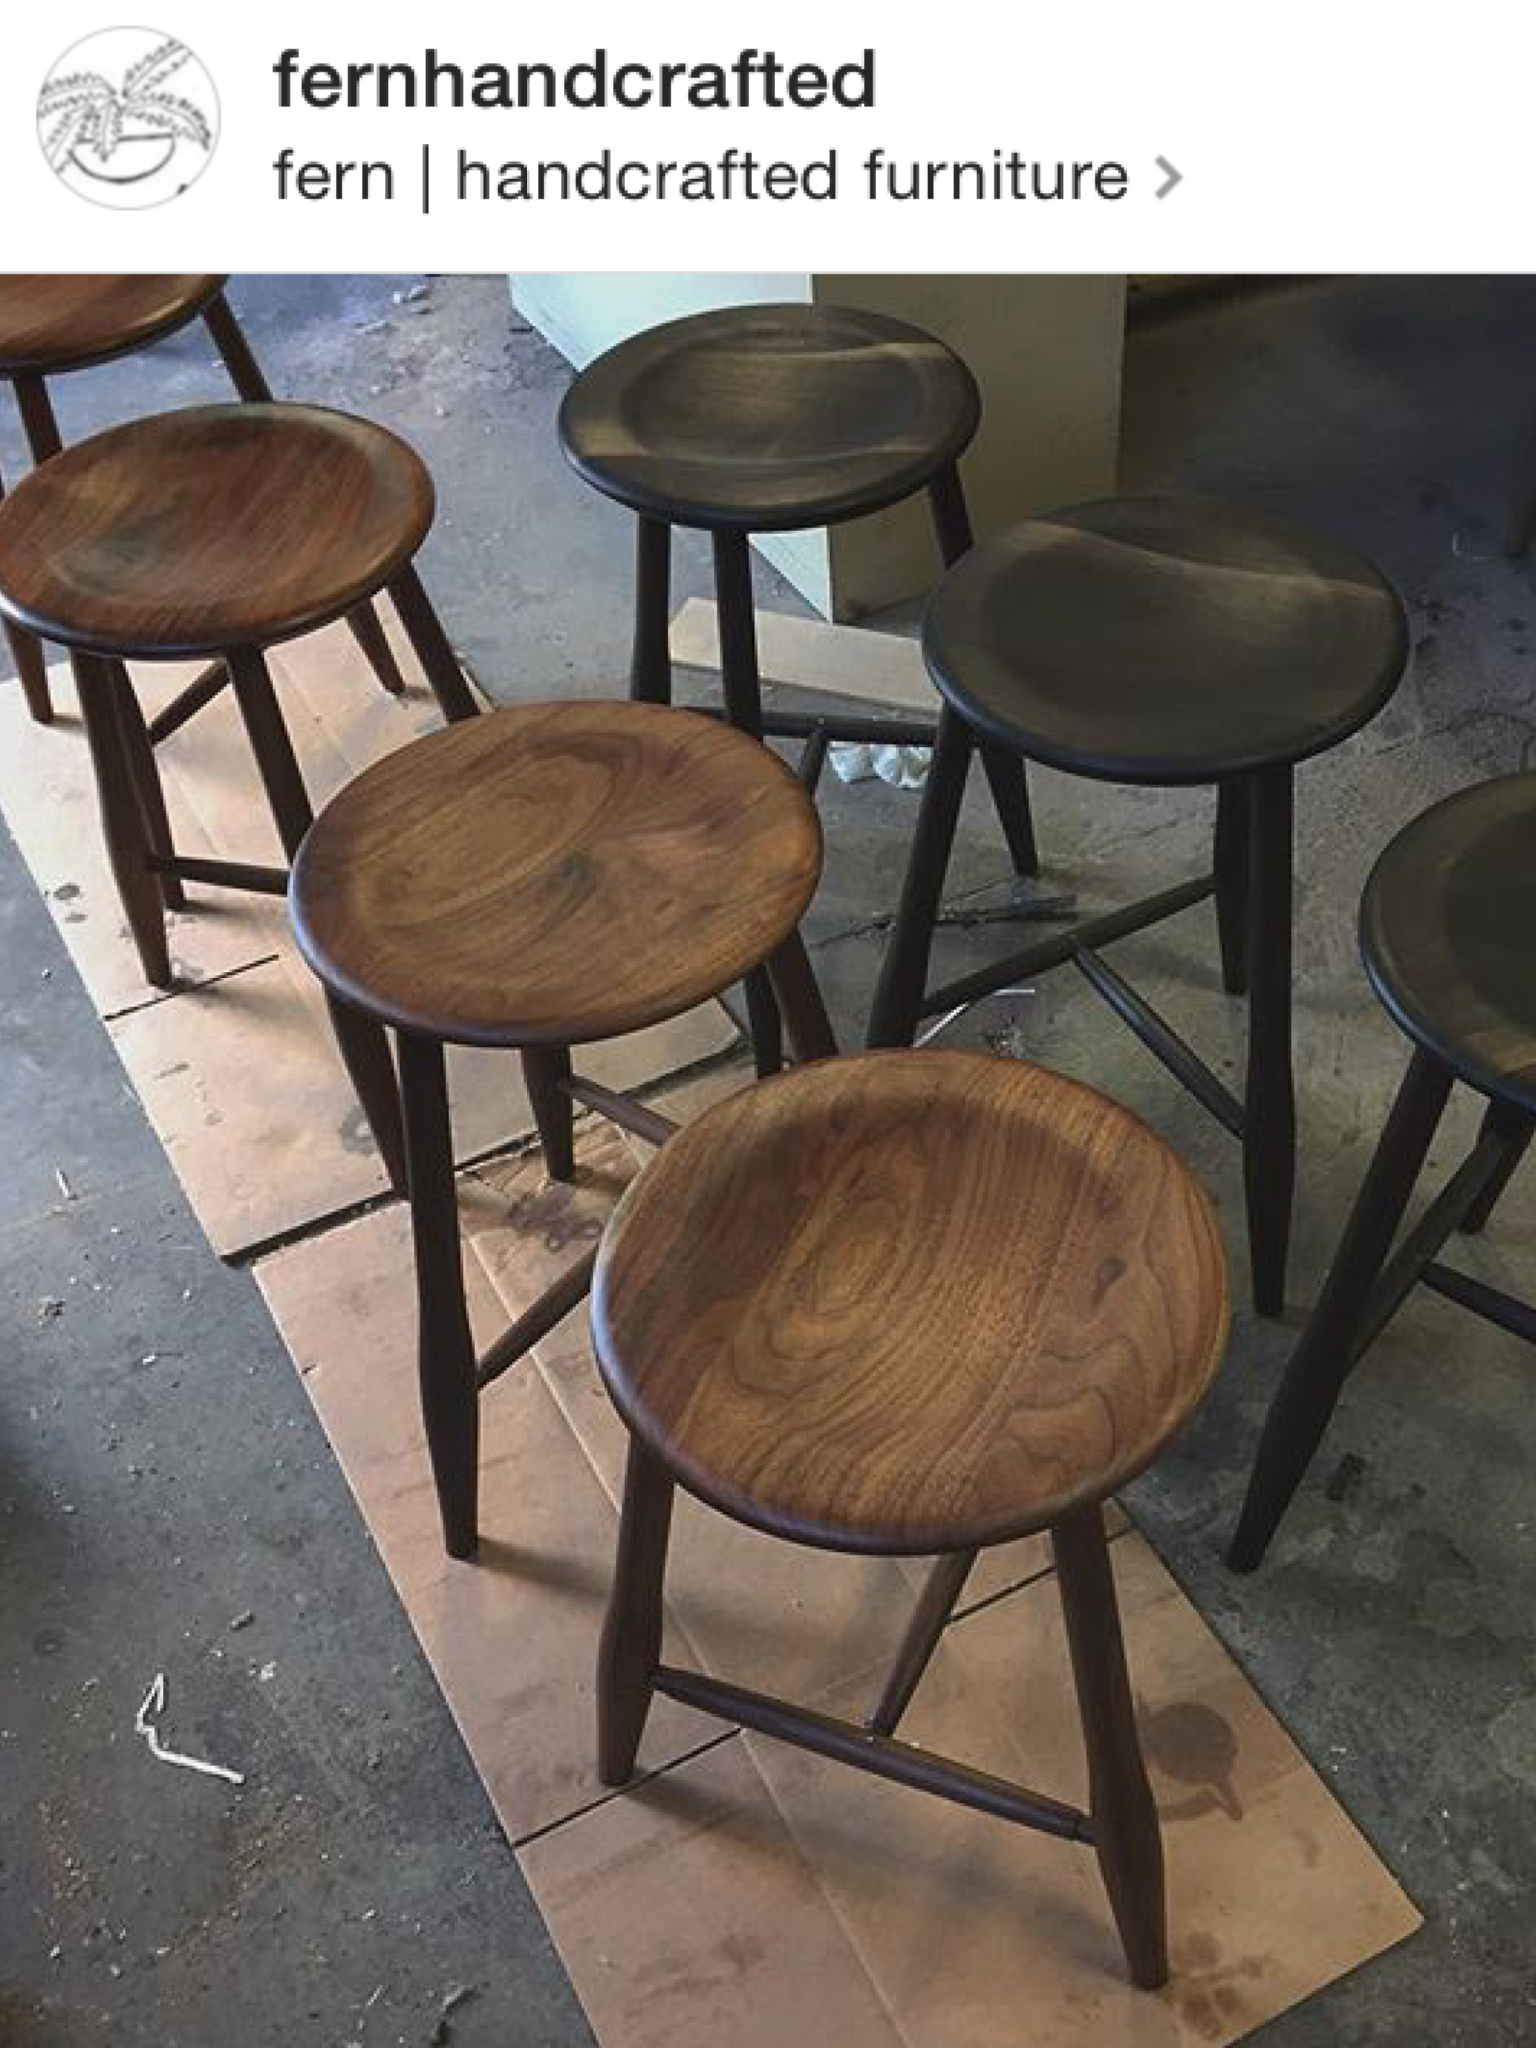 Pin by Mike Yarwood on Wood ~ Stools & Benches | Pinterest | Stools ...